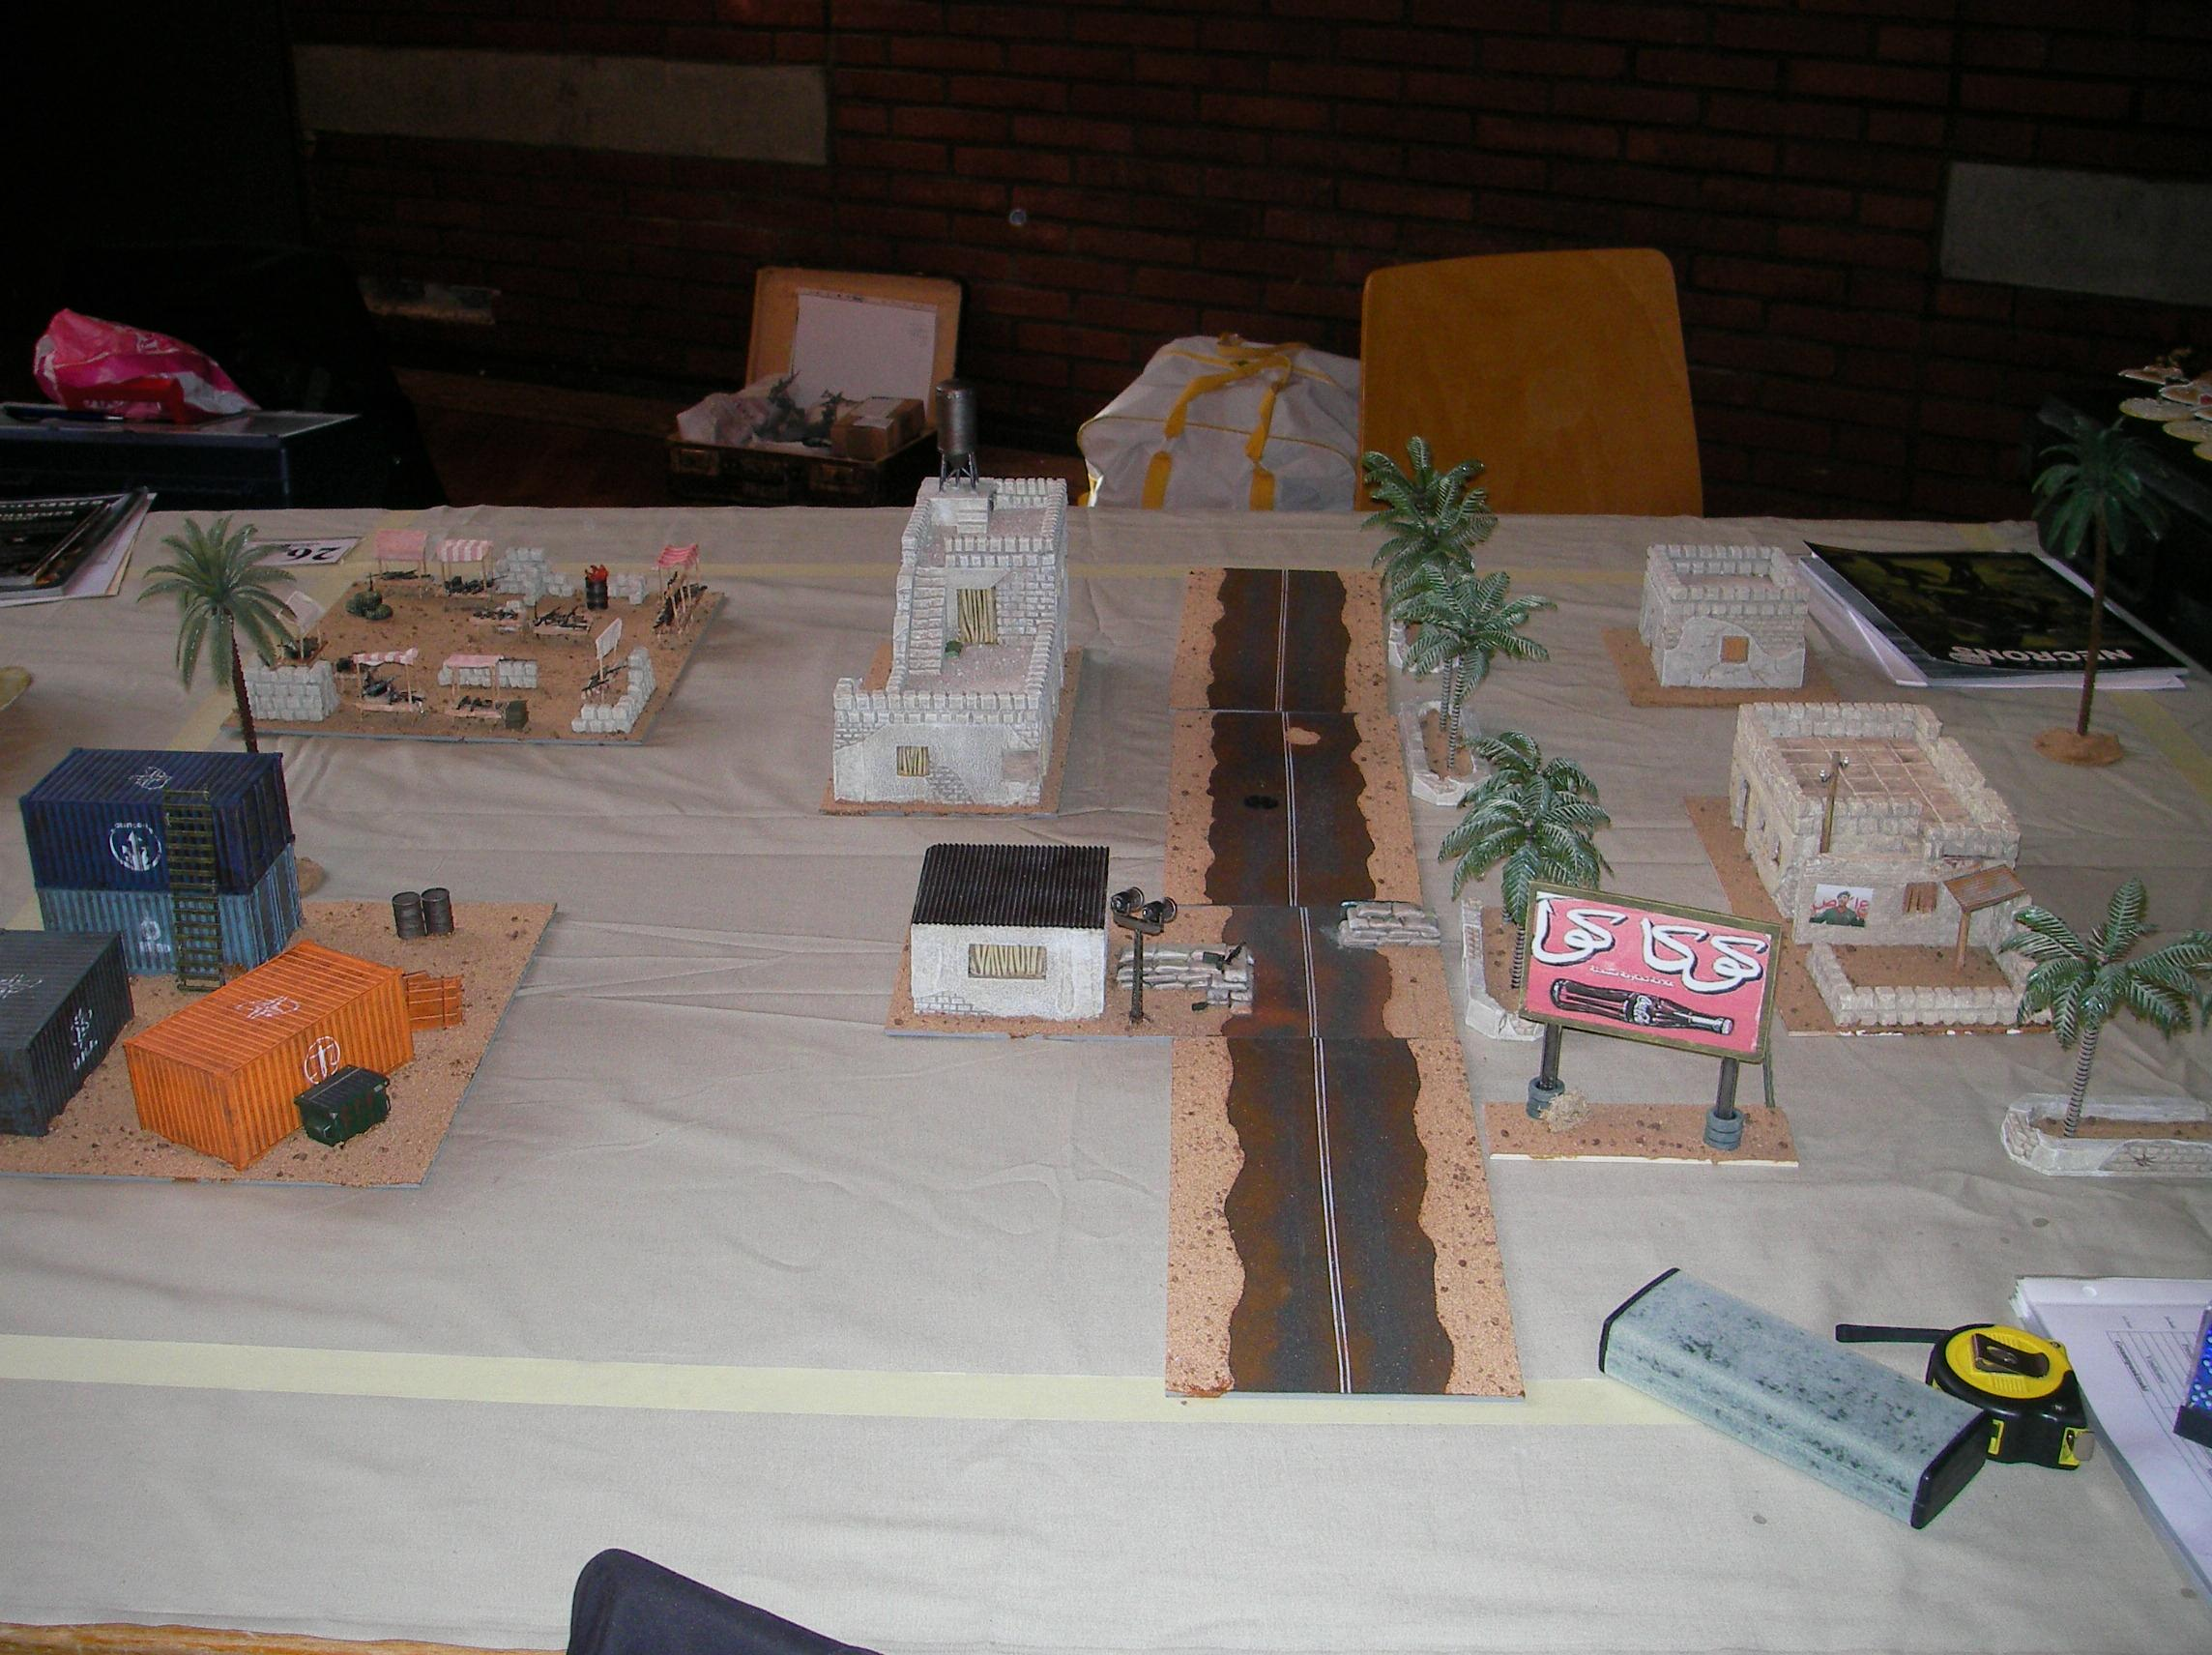 Evolution, Game Table, Iraq, Middle East, Middle Eastern, Modern, Terrain, Town